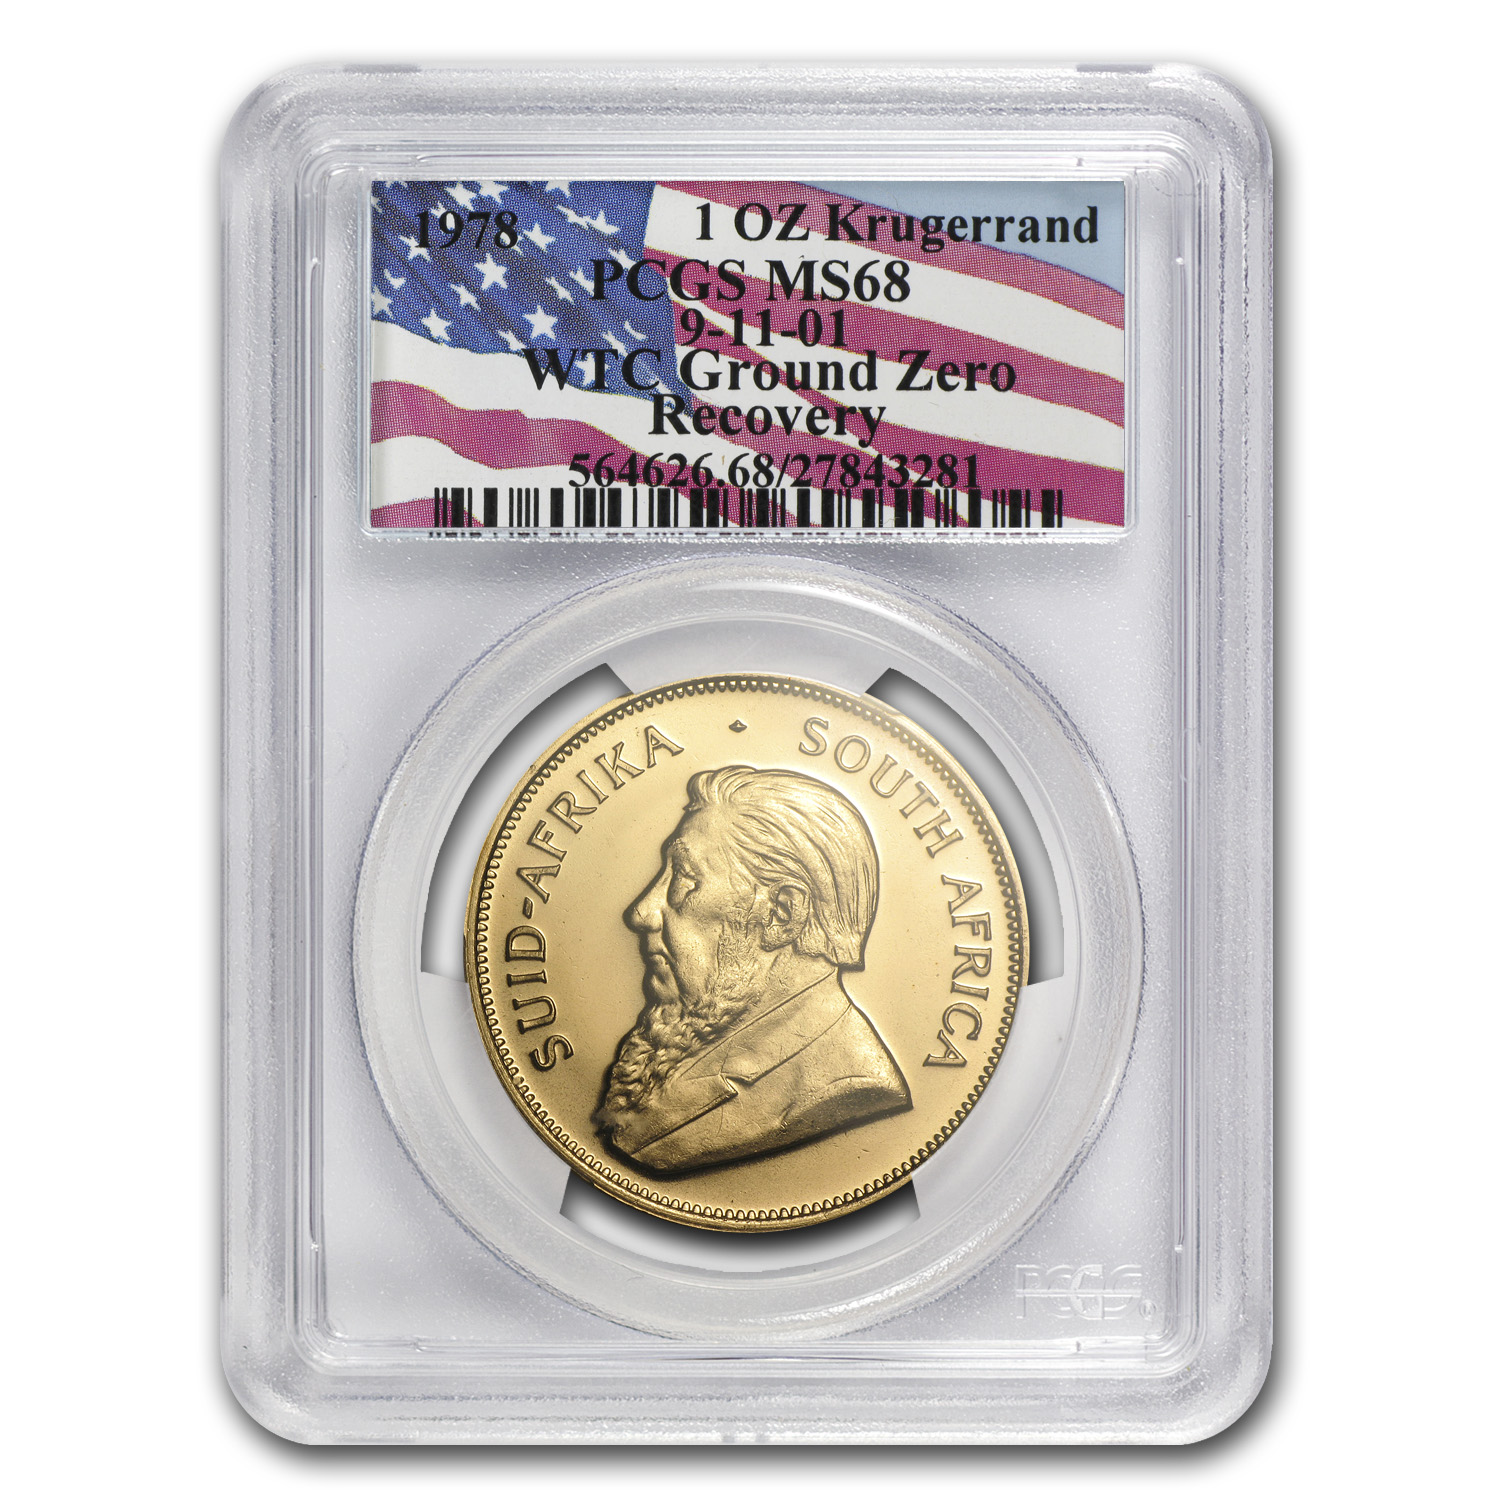 1978 South Africa 1 oz Gold Krugerrand MS-68 PCGS (WTC)